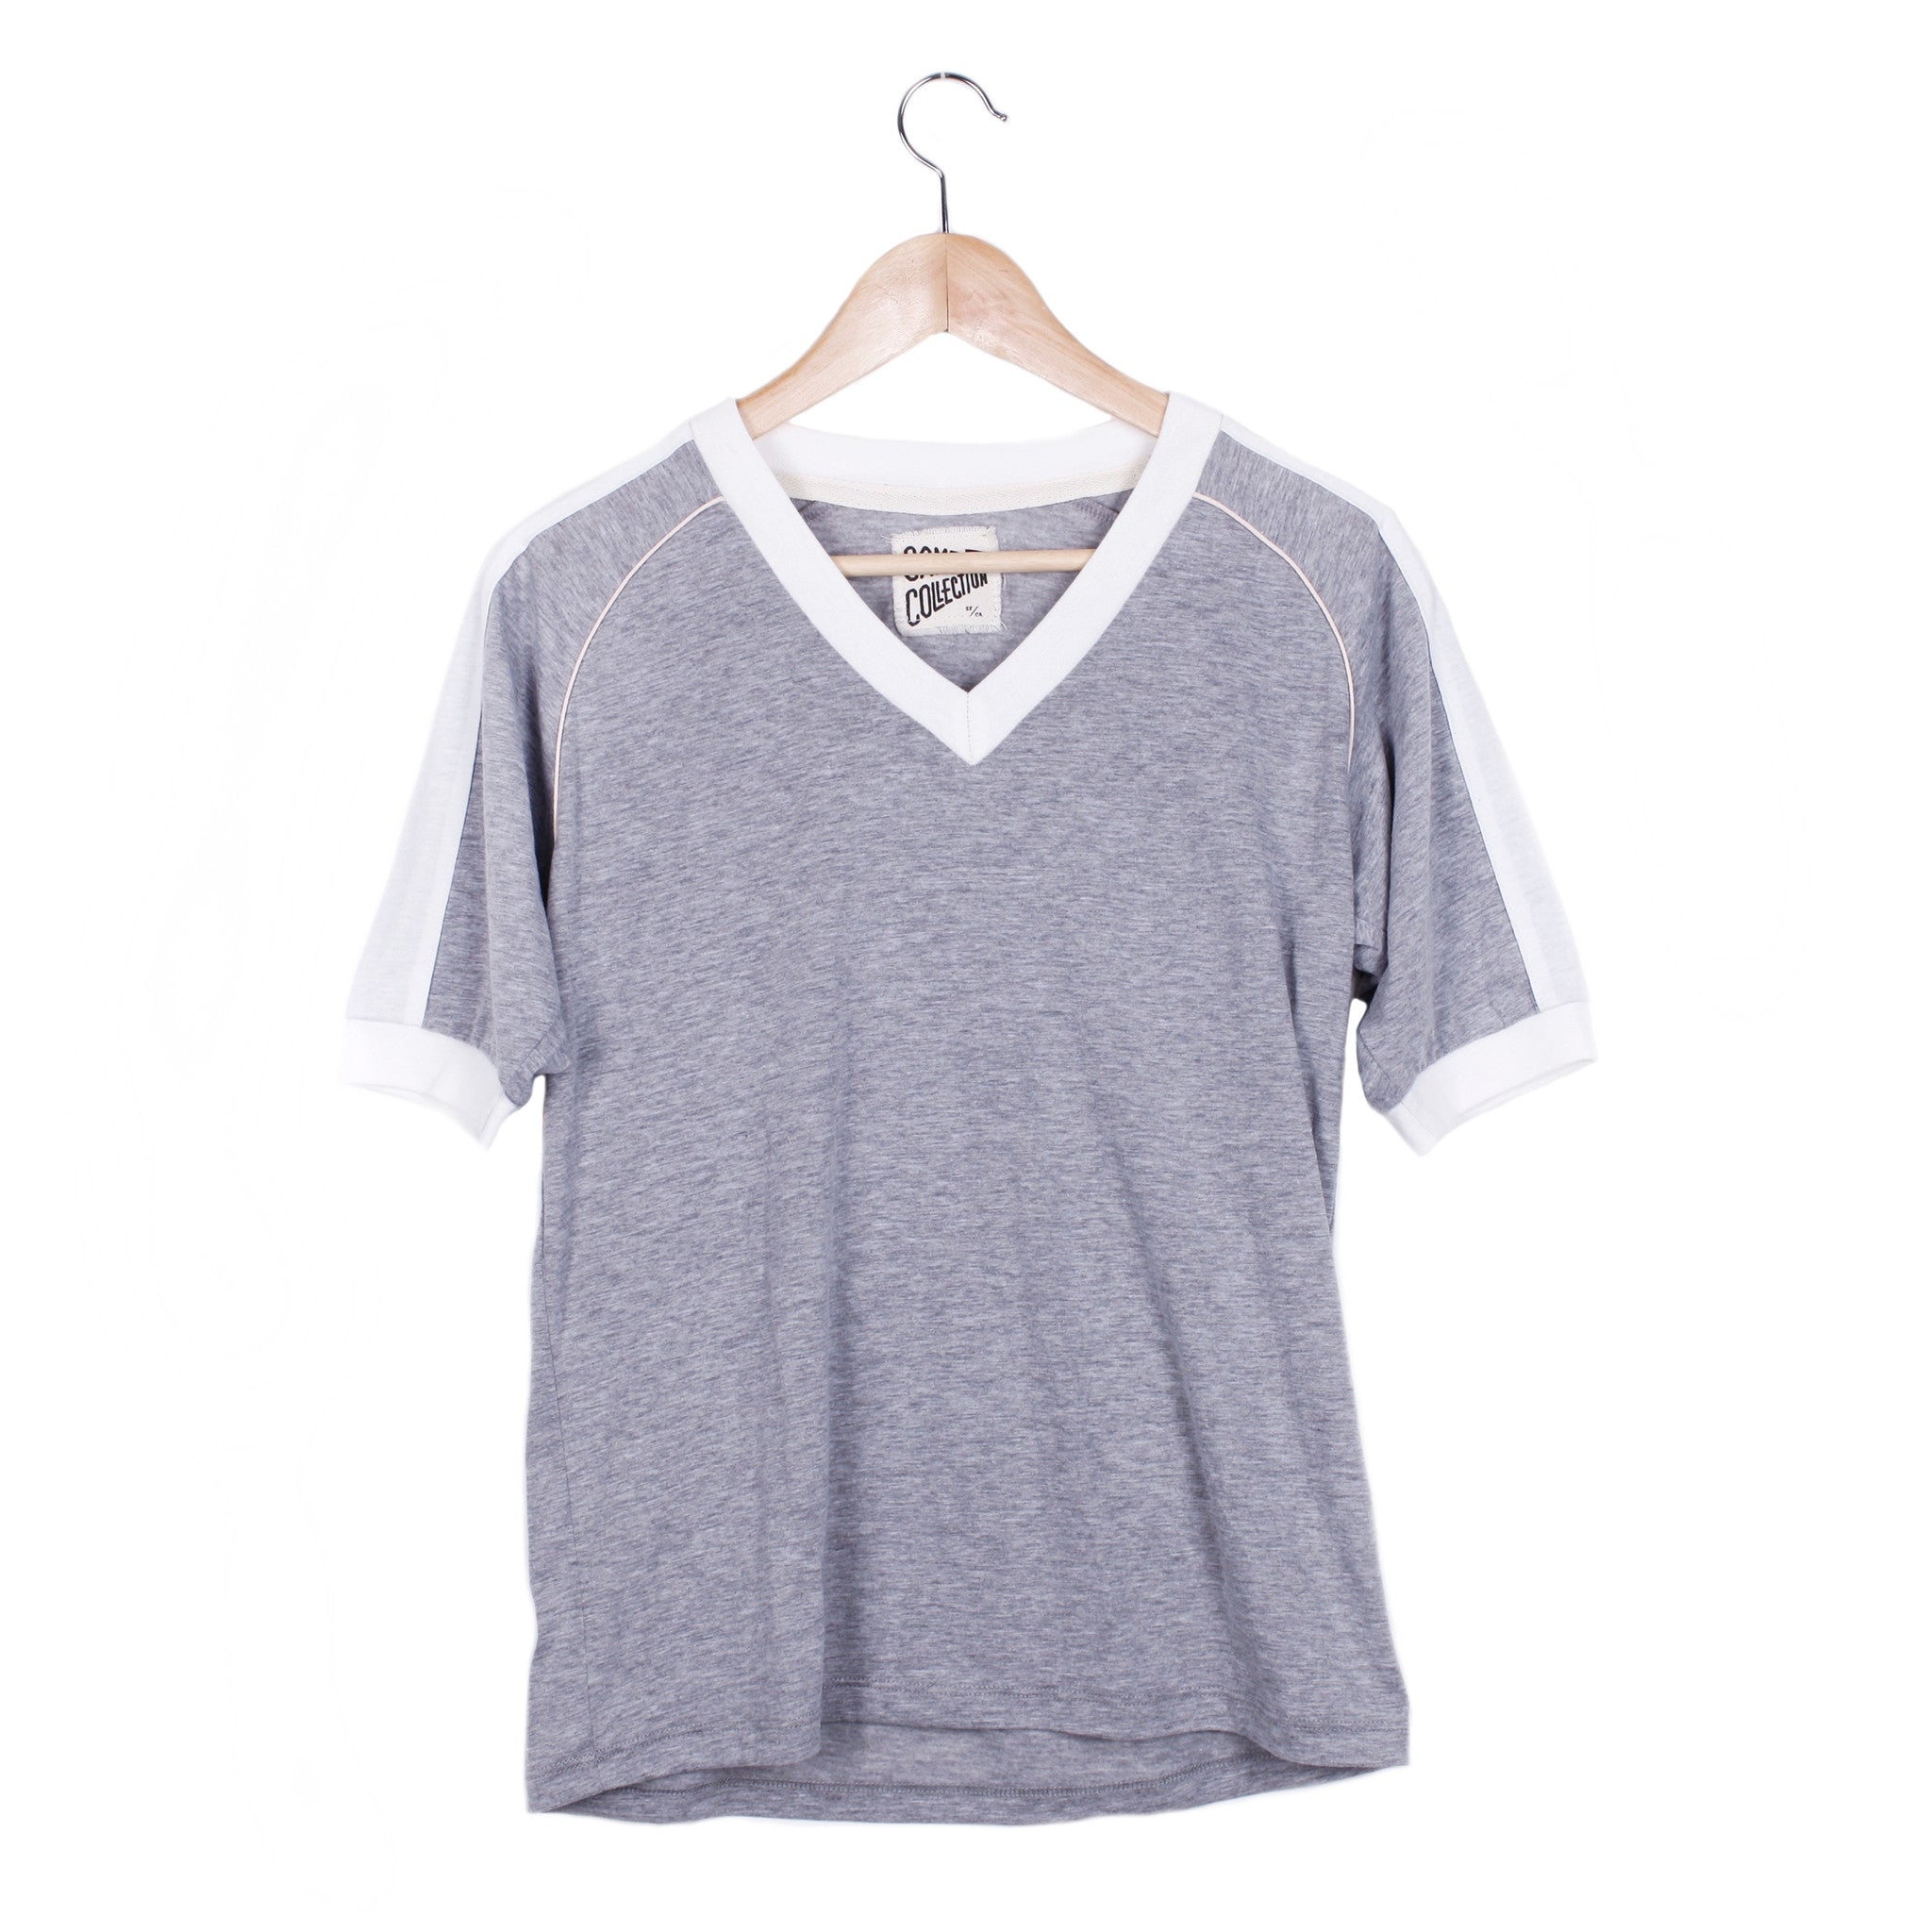 WAYNE V-NECK RINGER TEE - SMALL / HEATHER GREY / VINTAGE WHITE / PINK - CAMP Collection - 1